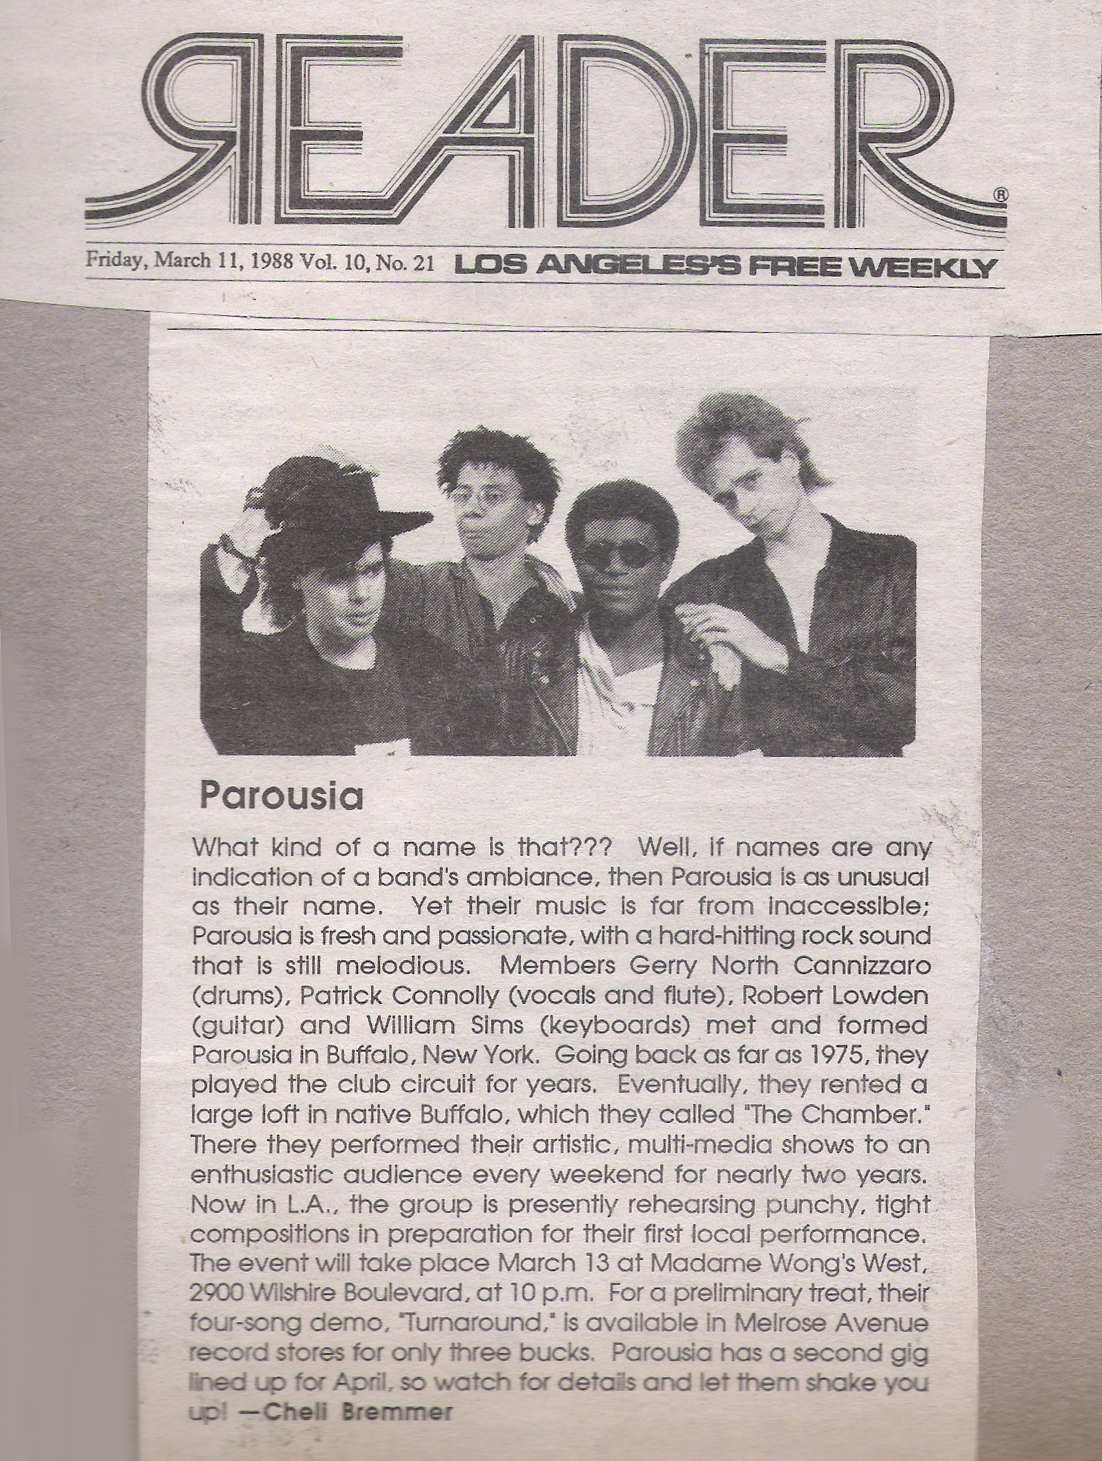 LA Reader- Review of Parousia March 11, 1988